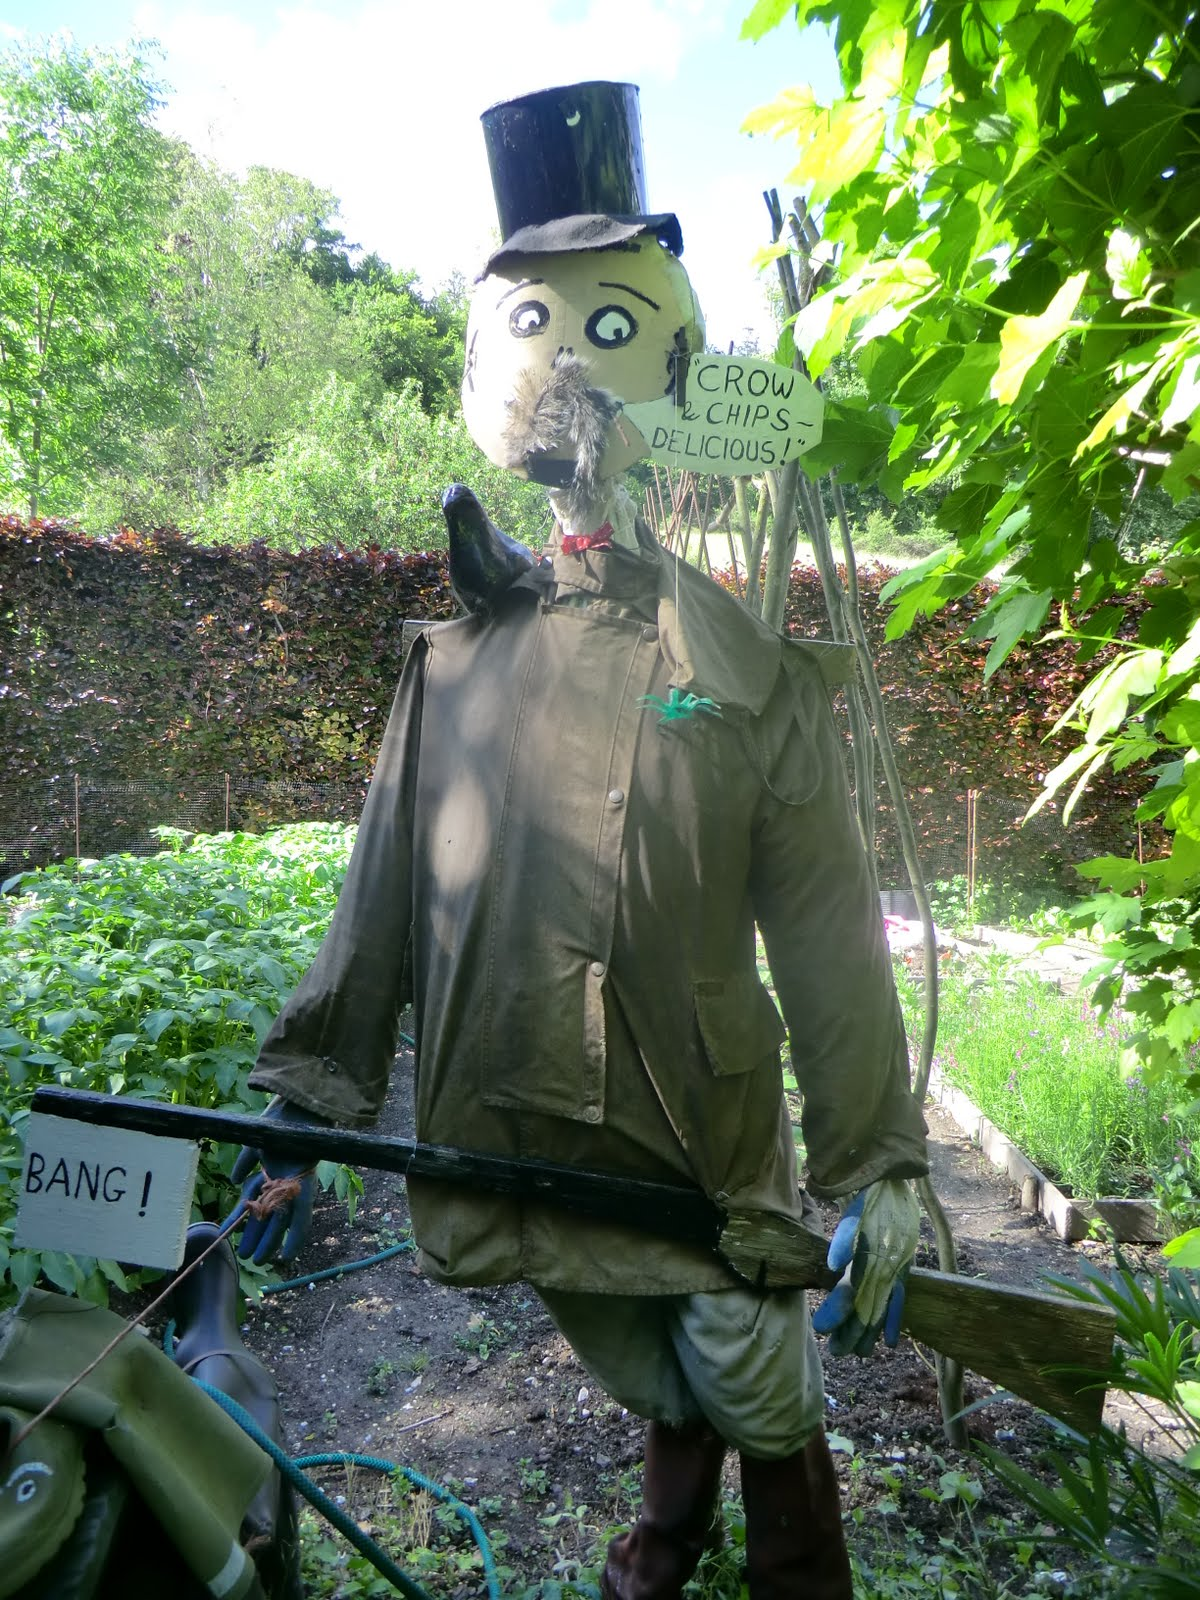 CIMG2968 Scarecrow at Chalk Hills farm, Whitchurch